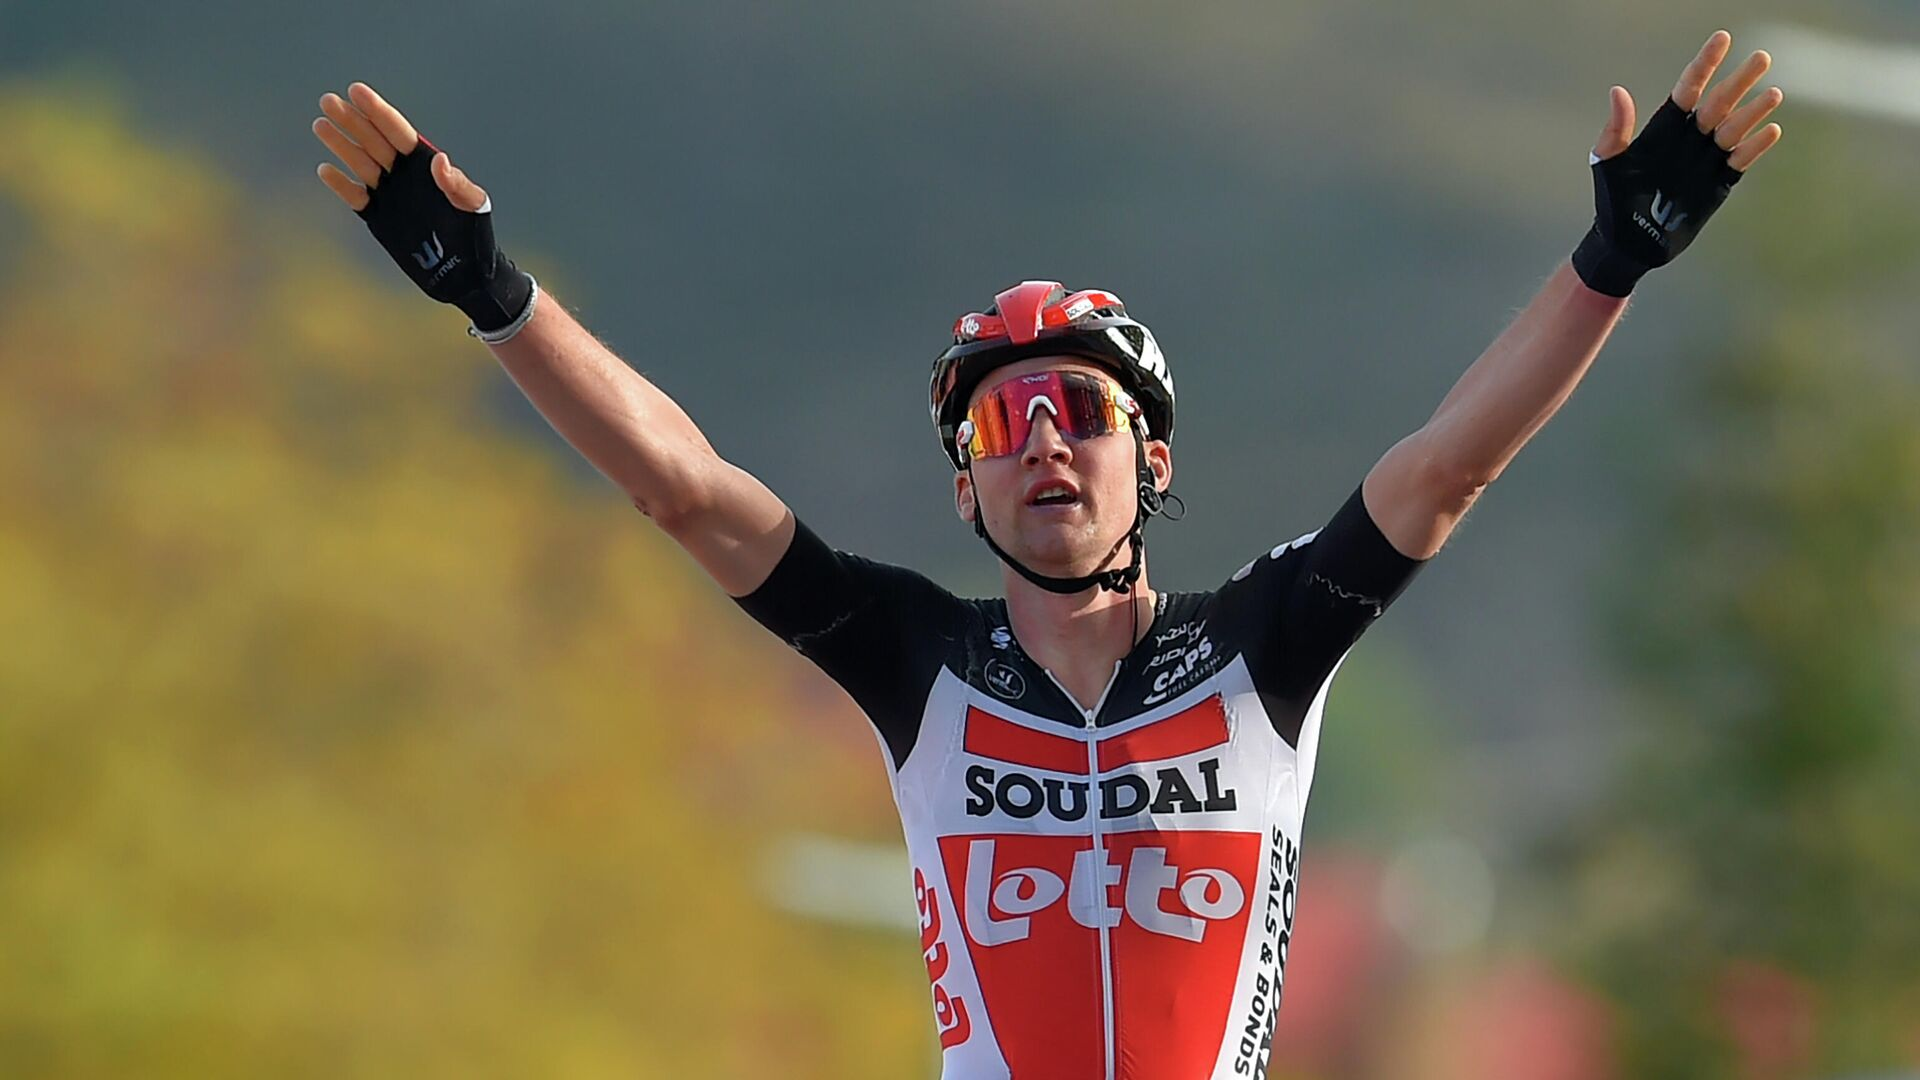 Team Lotto rider Belgium's Tim Wellens celebrates as he crosses the finish-line of the 5th stage of the 2020 La Vuelta cycling tour of Spain, a 184,4-km race from Huesca to Sabinanigo, on October 24, 2020. (Photo by ANDER GILLENEA / AFP) - РИА Новости, 1920, 24.10.2020